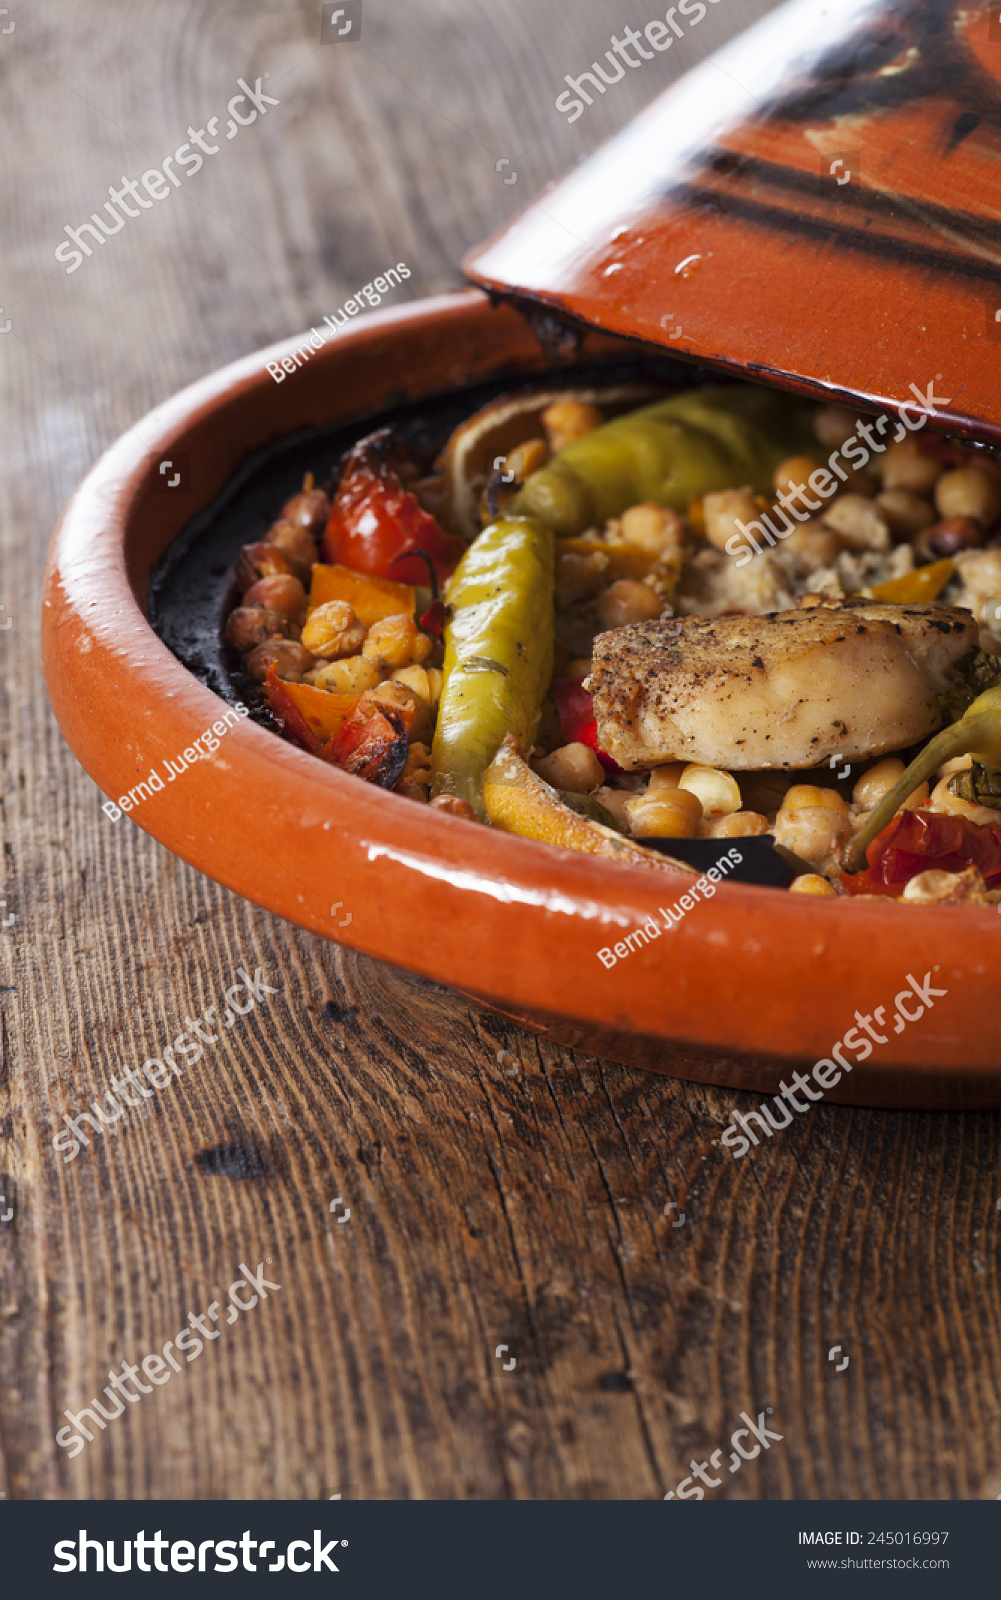 Cooked Chicken In A Tajine Photo libre de droits 245016997 ...